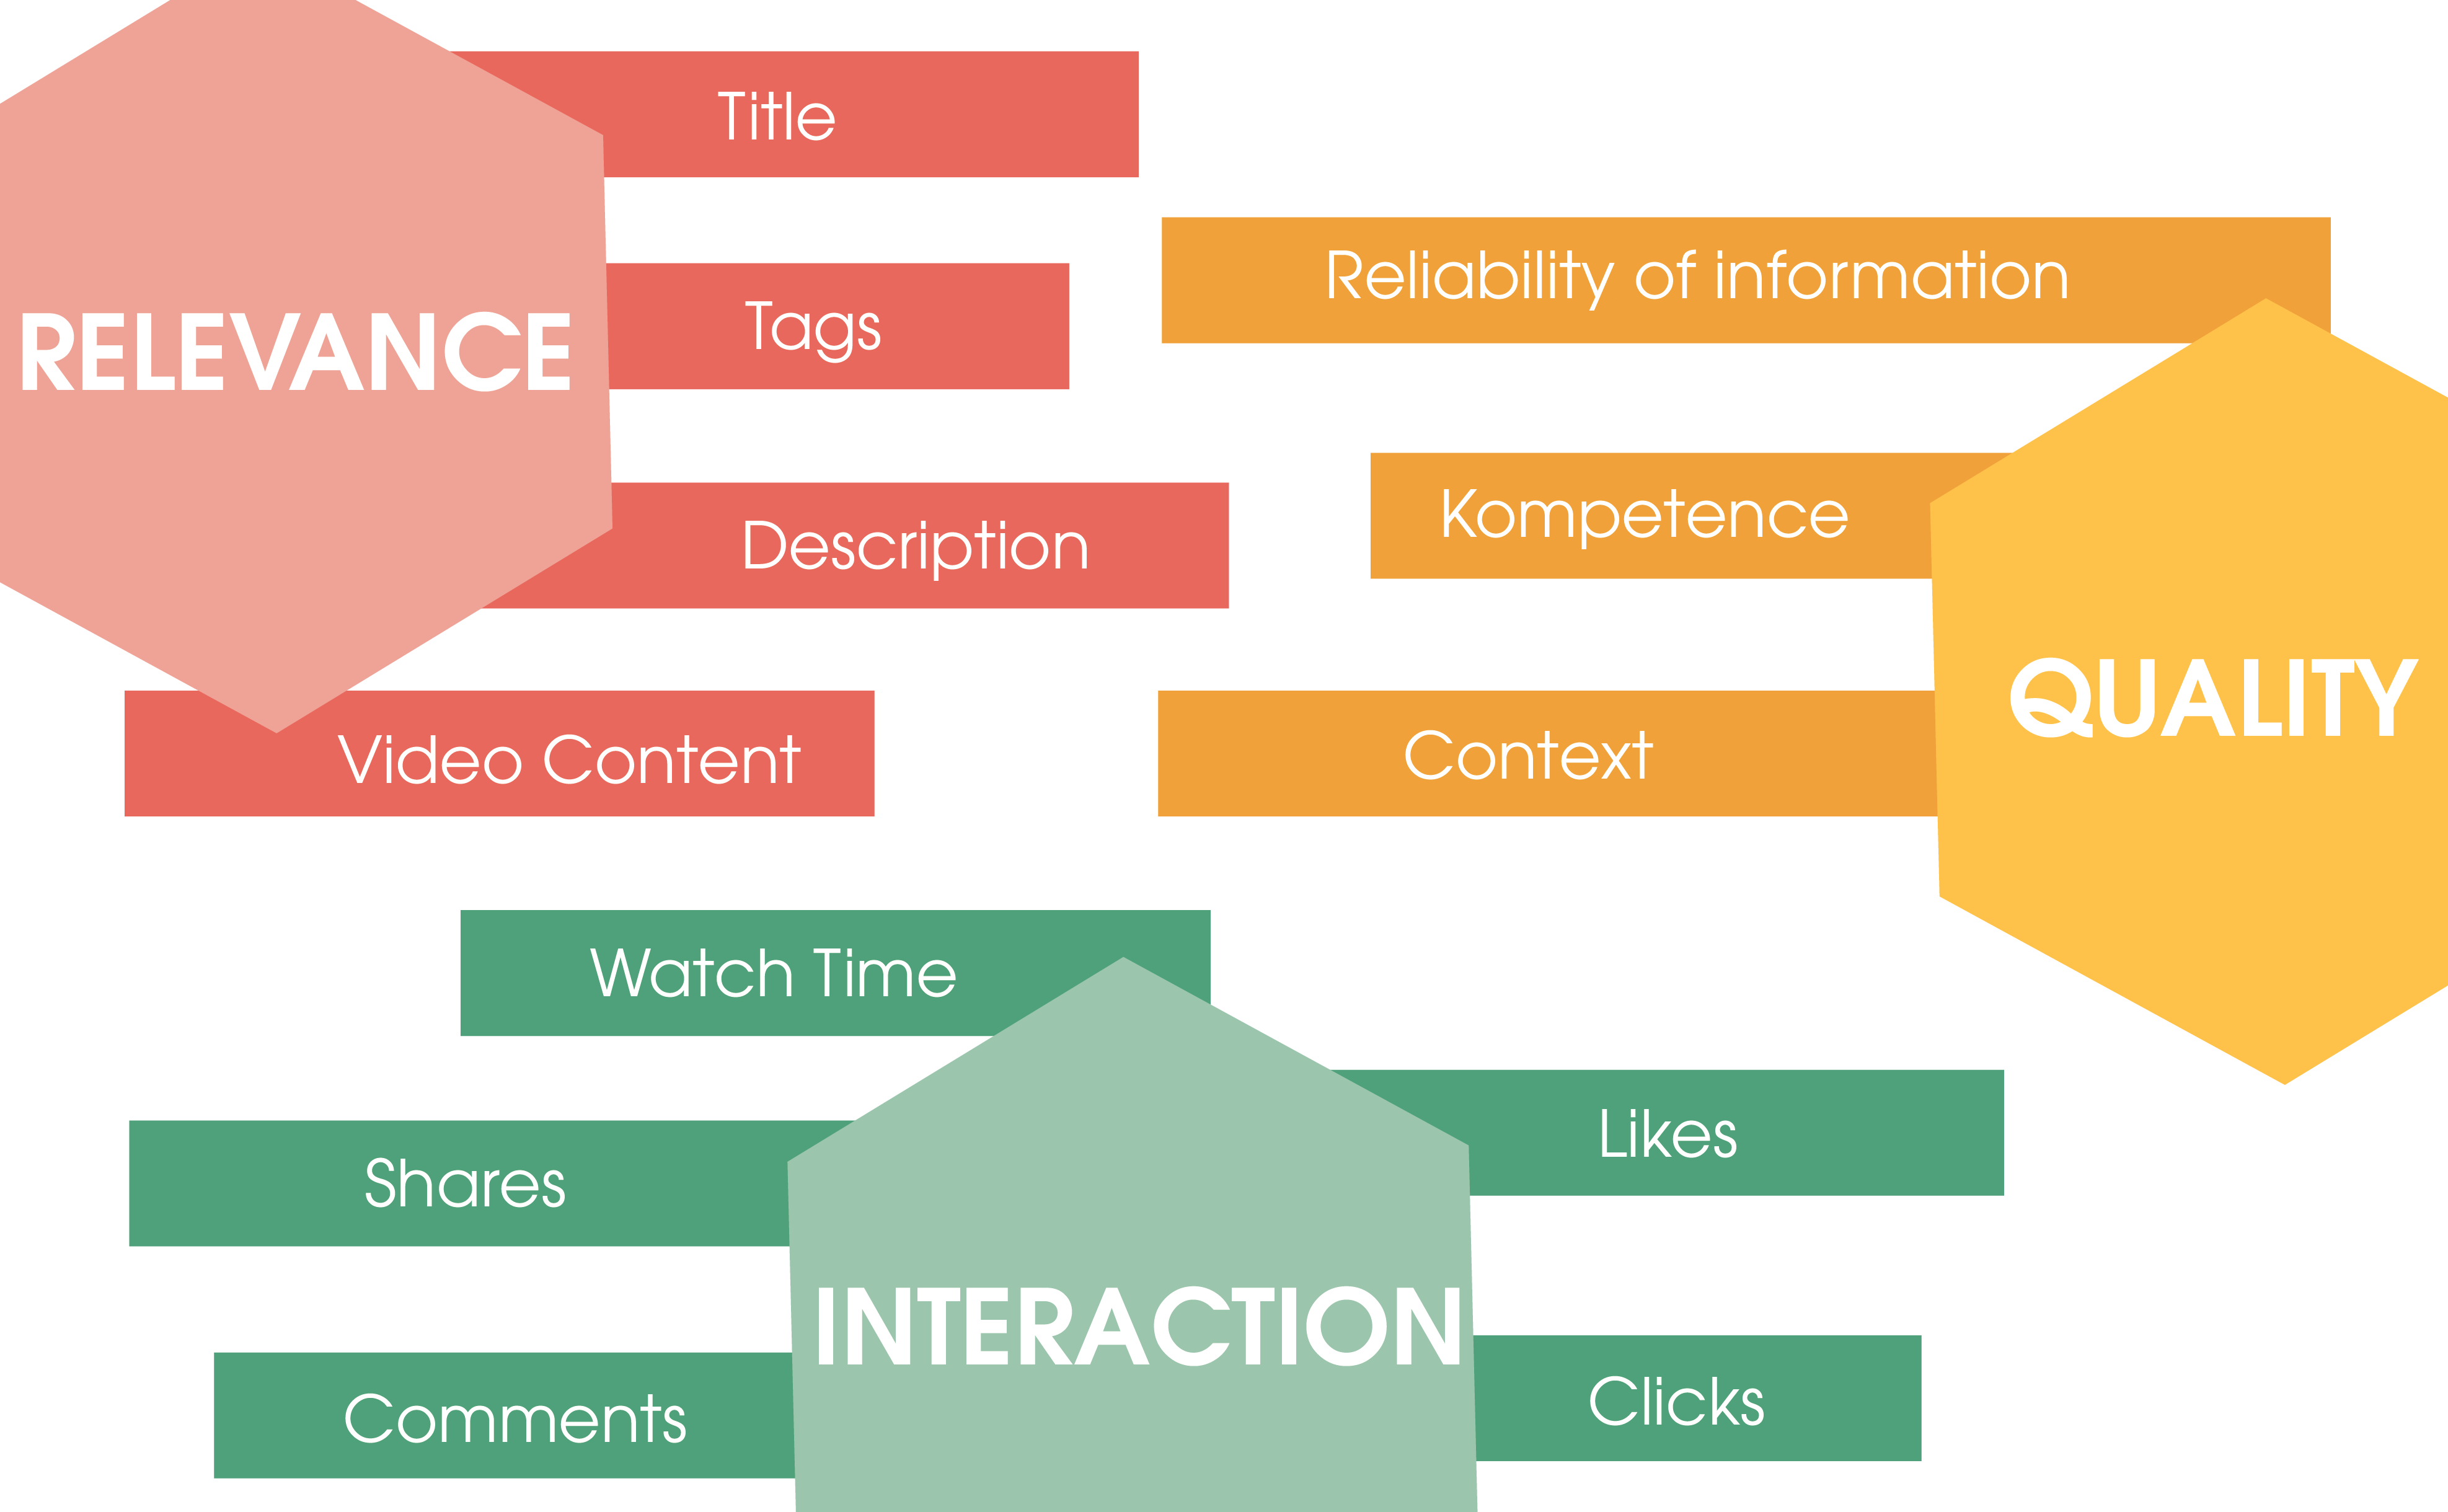 Shown are the three major factors that influence the YouTube algorithm: 1. relevance (shown in red) 2. interaction (shown in green)  3. quality (shown in orange)  For each of the individual factors, various sub-factors are listed that have an influence.